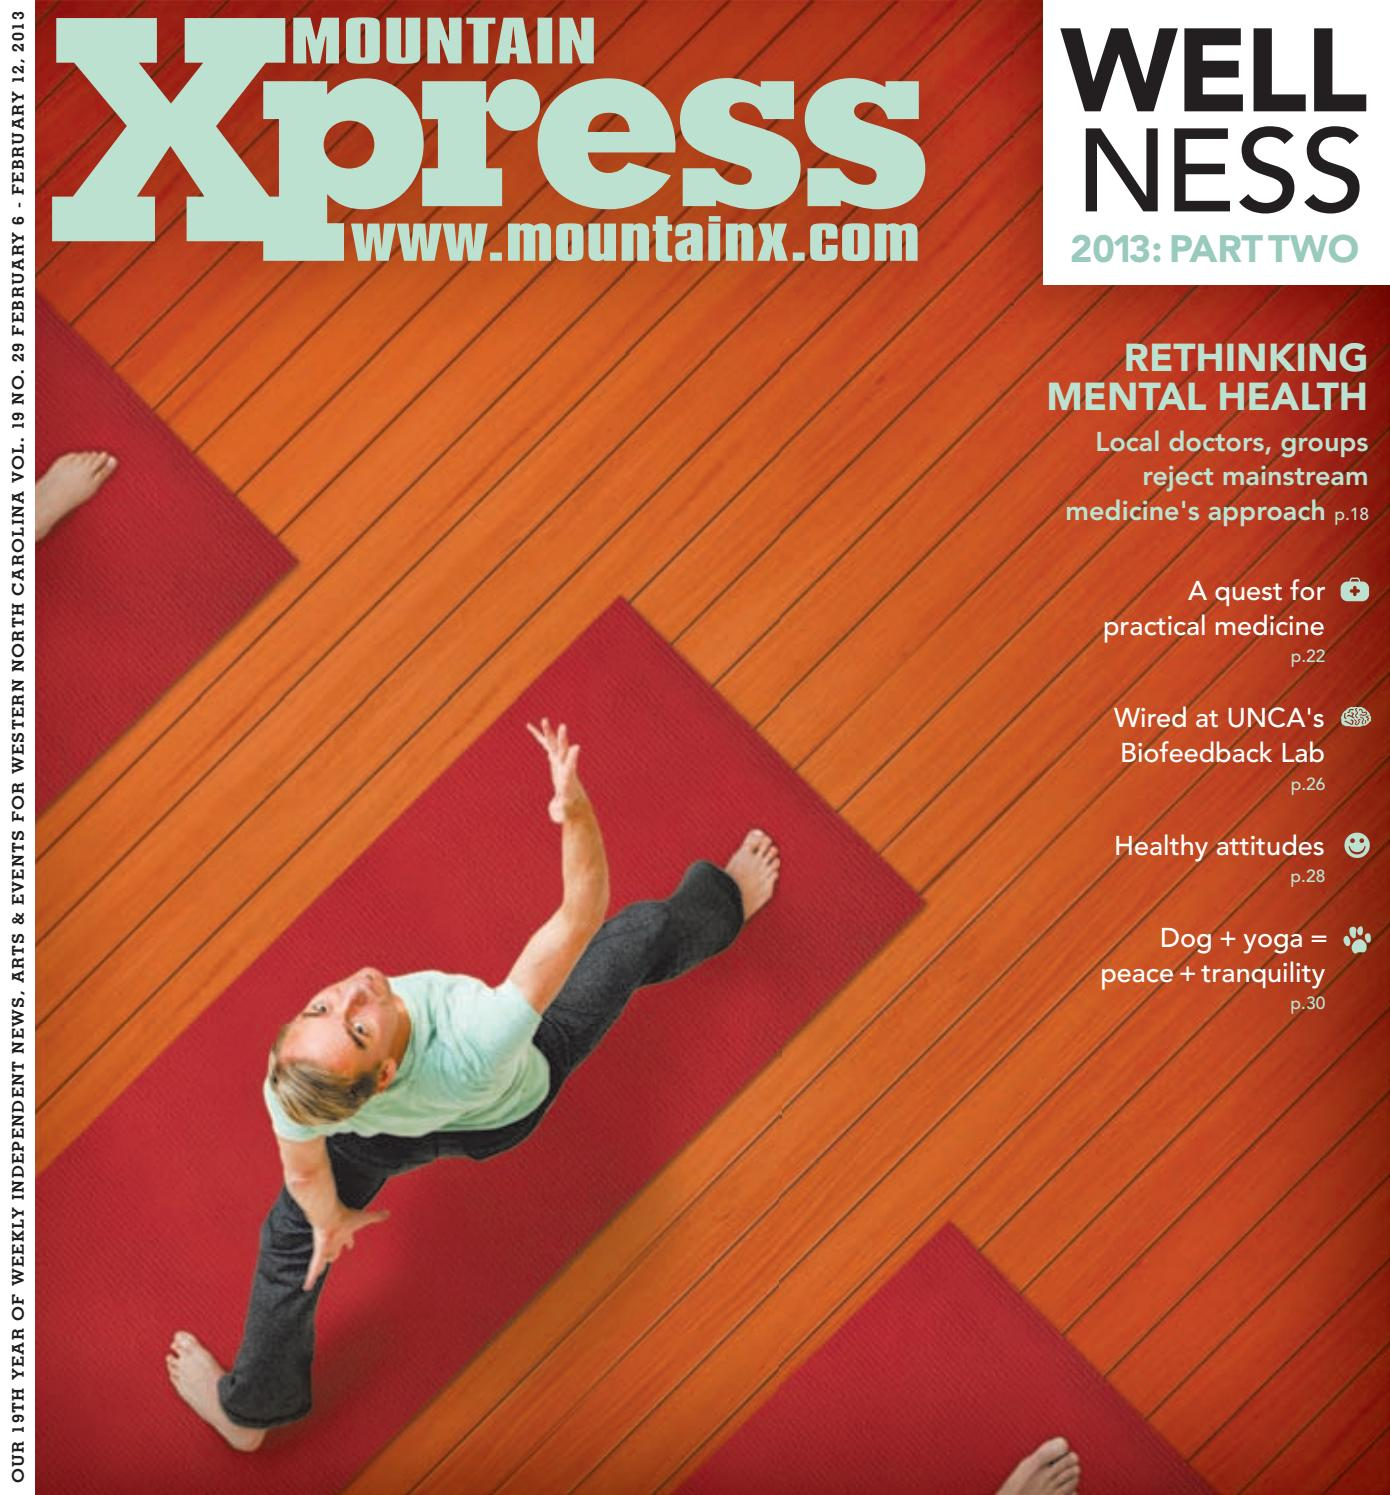 Mountain Xpress 02 06 13 by Mountain Xpress - issuu